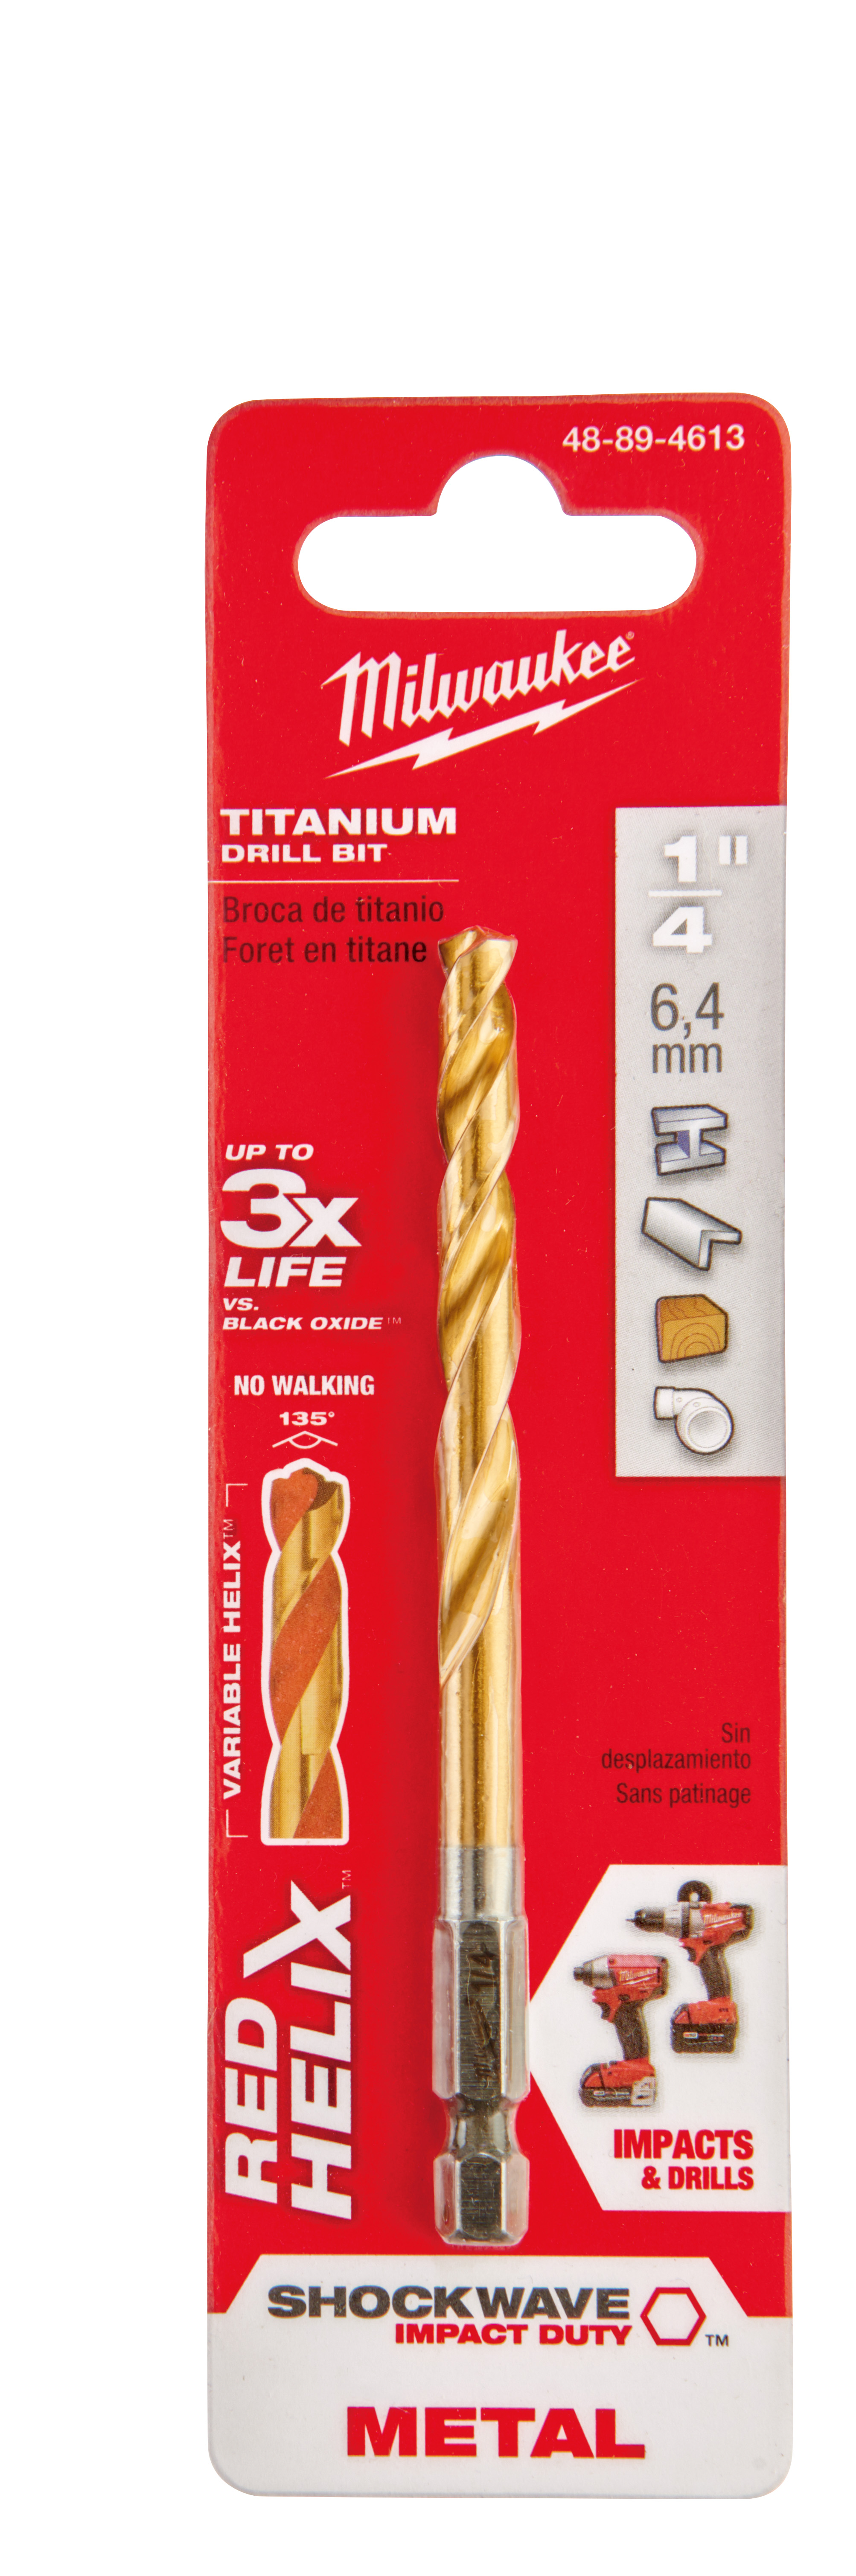 Milwaukee® 48-89-4613 SHOCKWAVE™ Hex Shank Impact Drill Bit, 1/4 in Drill - Fraction, 0.25 in Drill - Decimal Inch, 2-15/32 in D Cutting